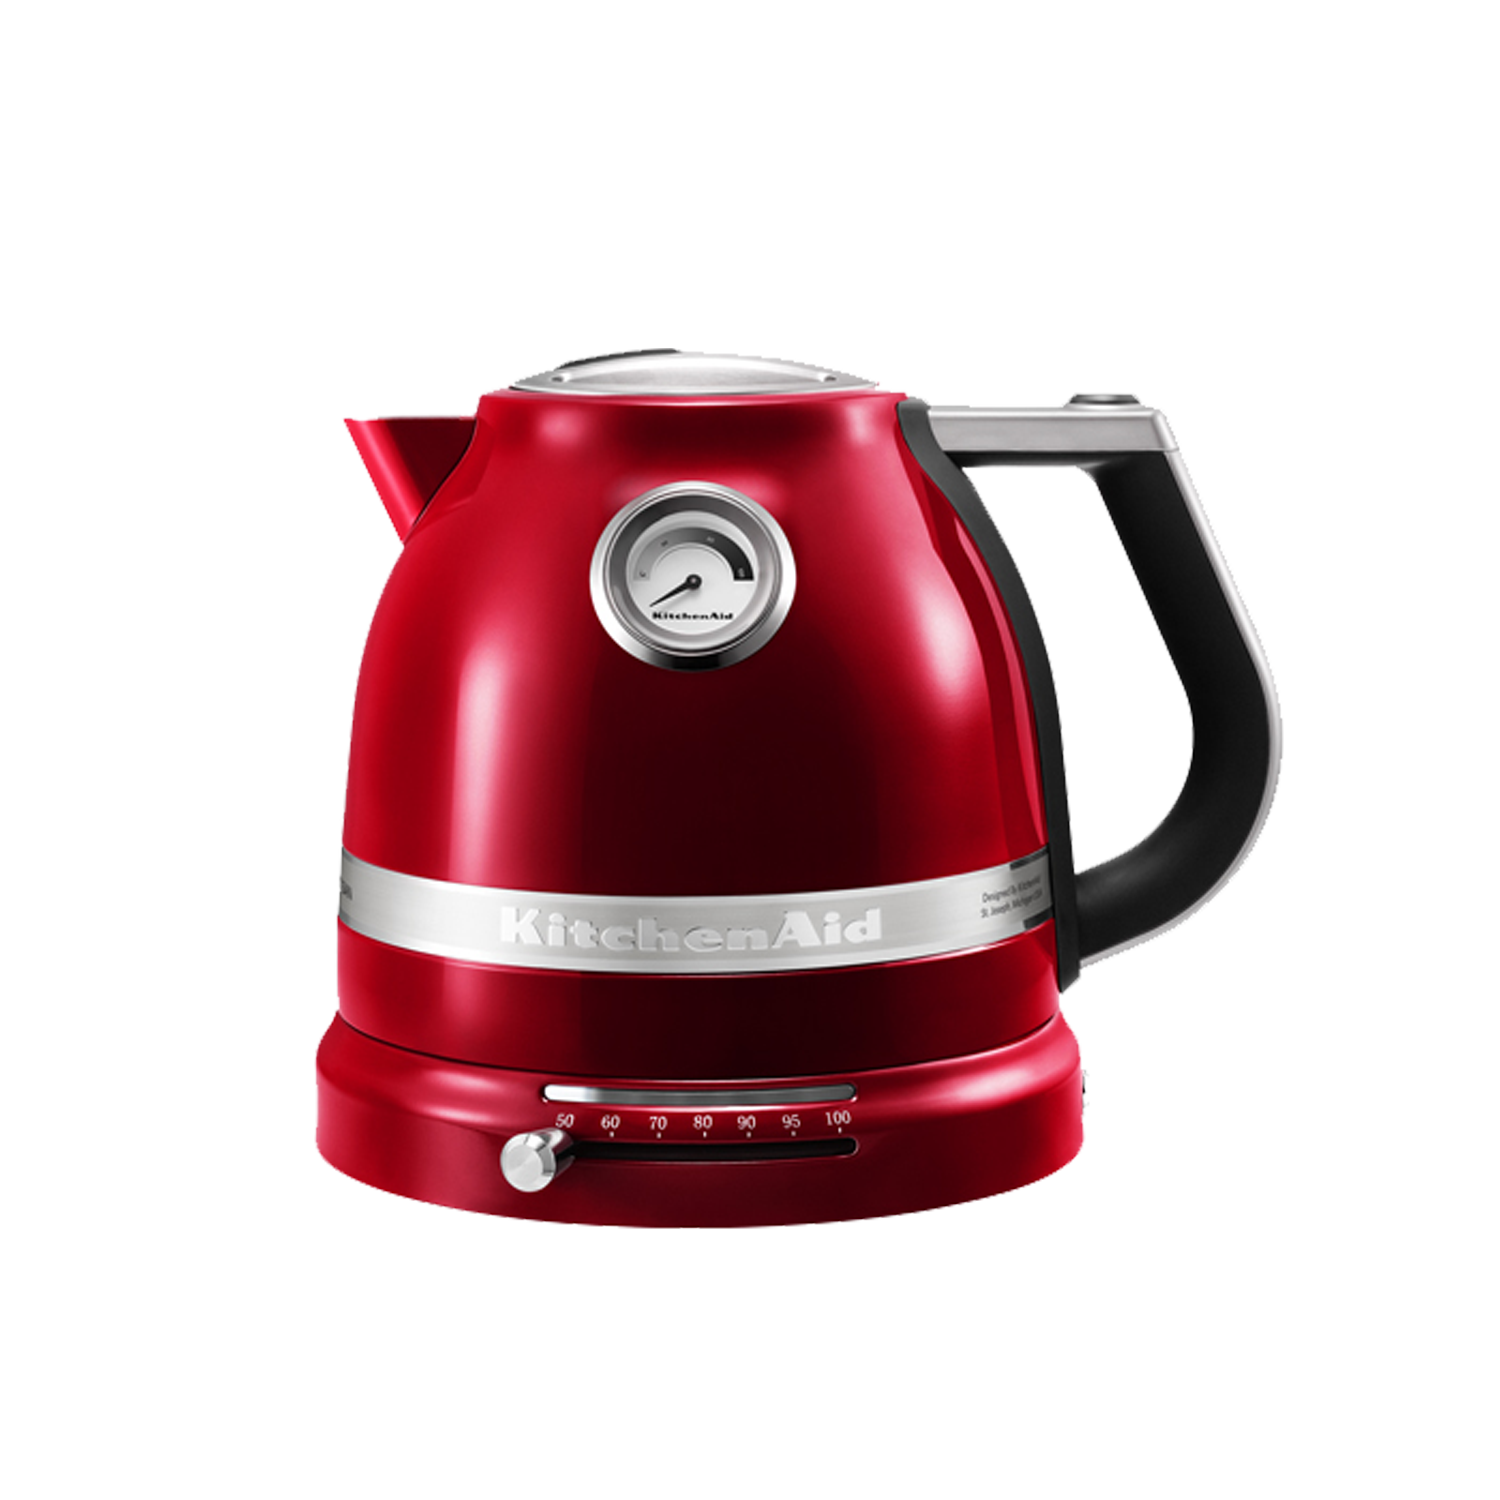 KitchenAid Wasserkocher Artisan 1,5 l, Empire Rot